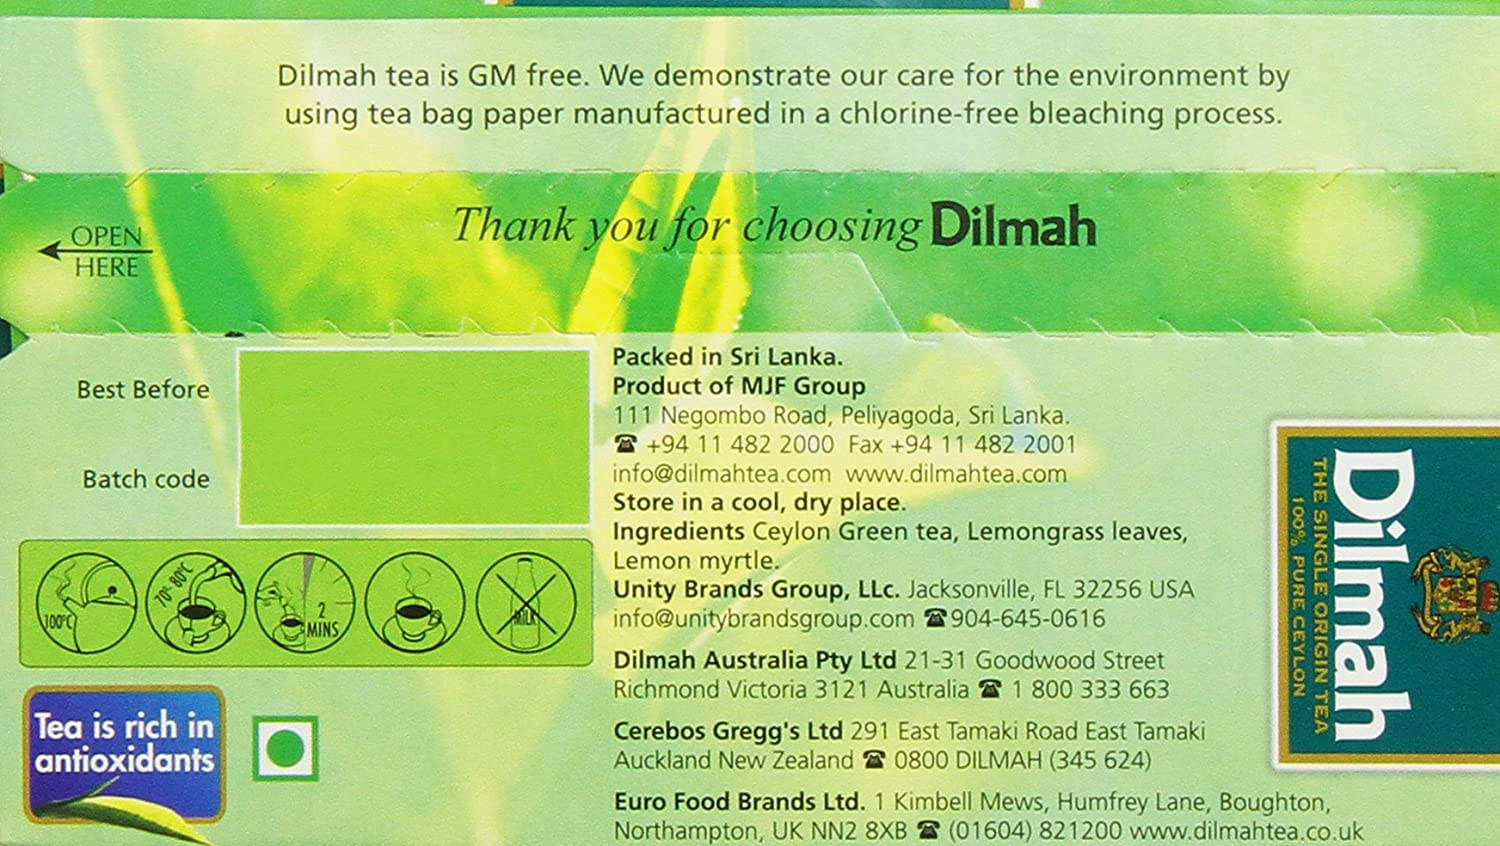 New zealand brands of tea - Amazon Com Dilmah Tea Ceylon Green Tea With Lemongrass 20 Count Foil Wrapped Tea Bags Pack Of 6 Grocery Gourmet Food